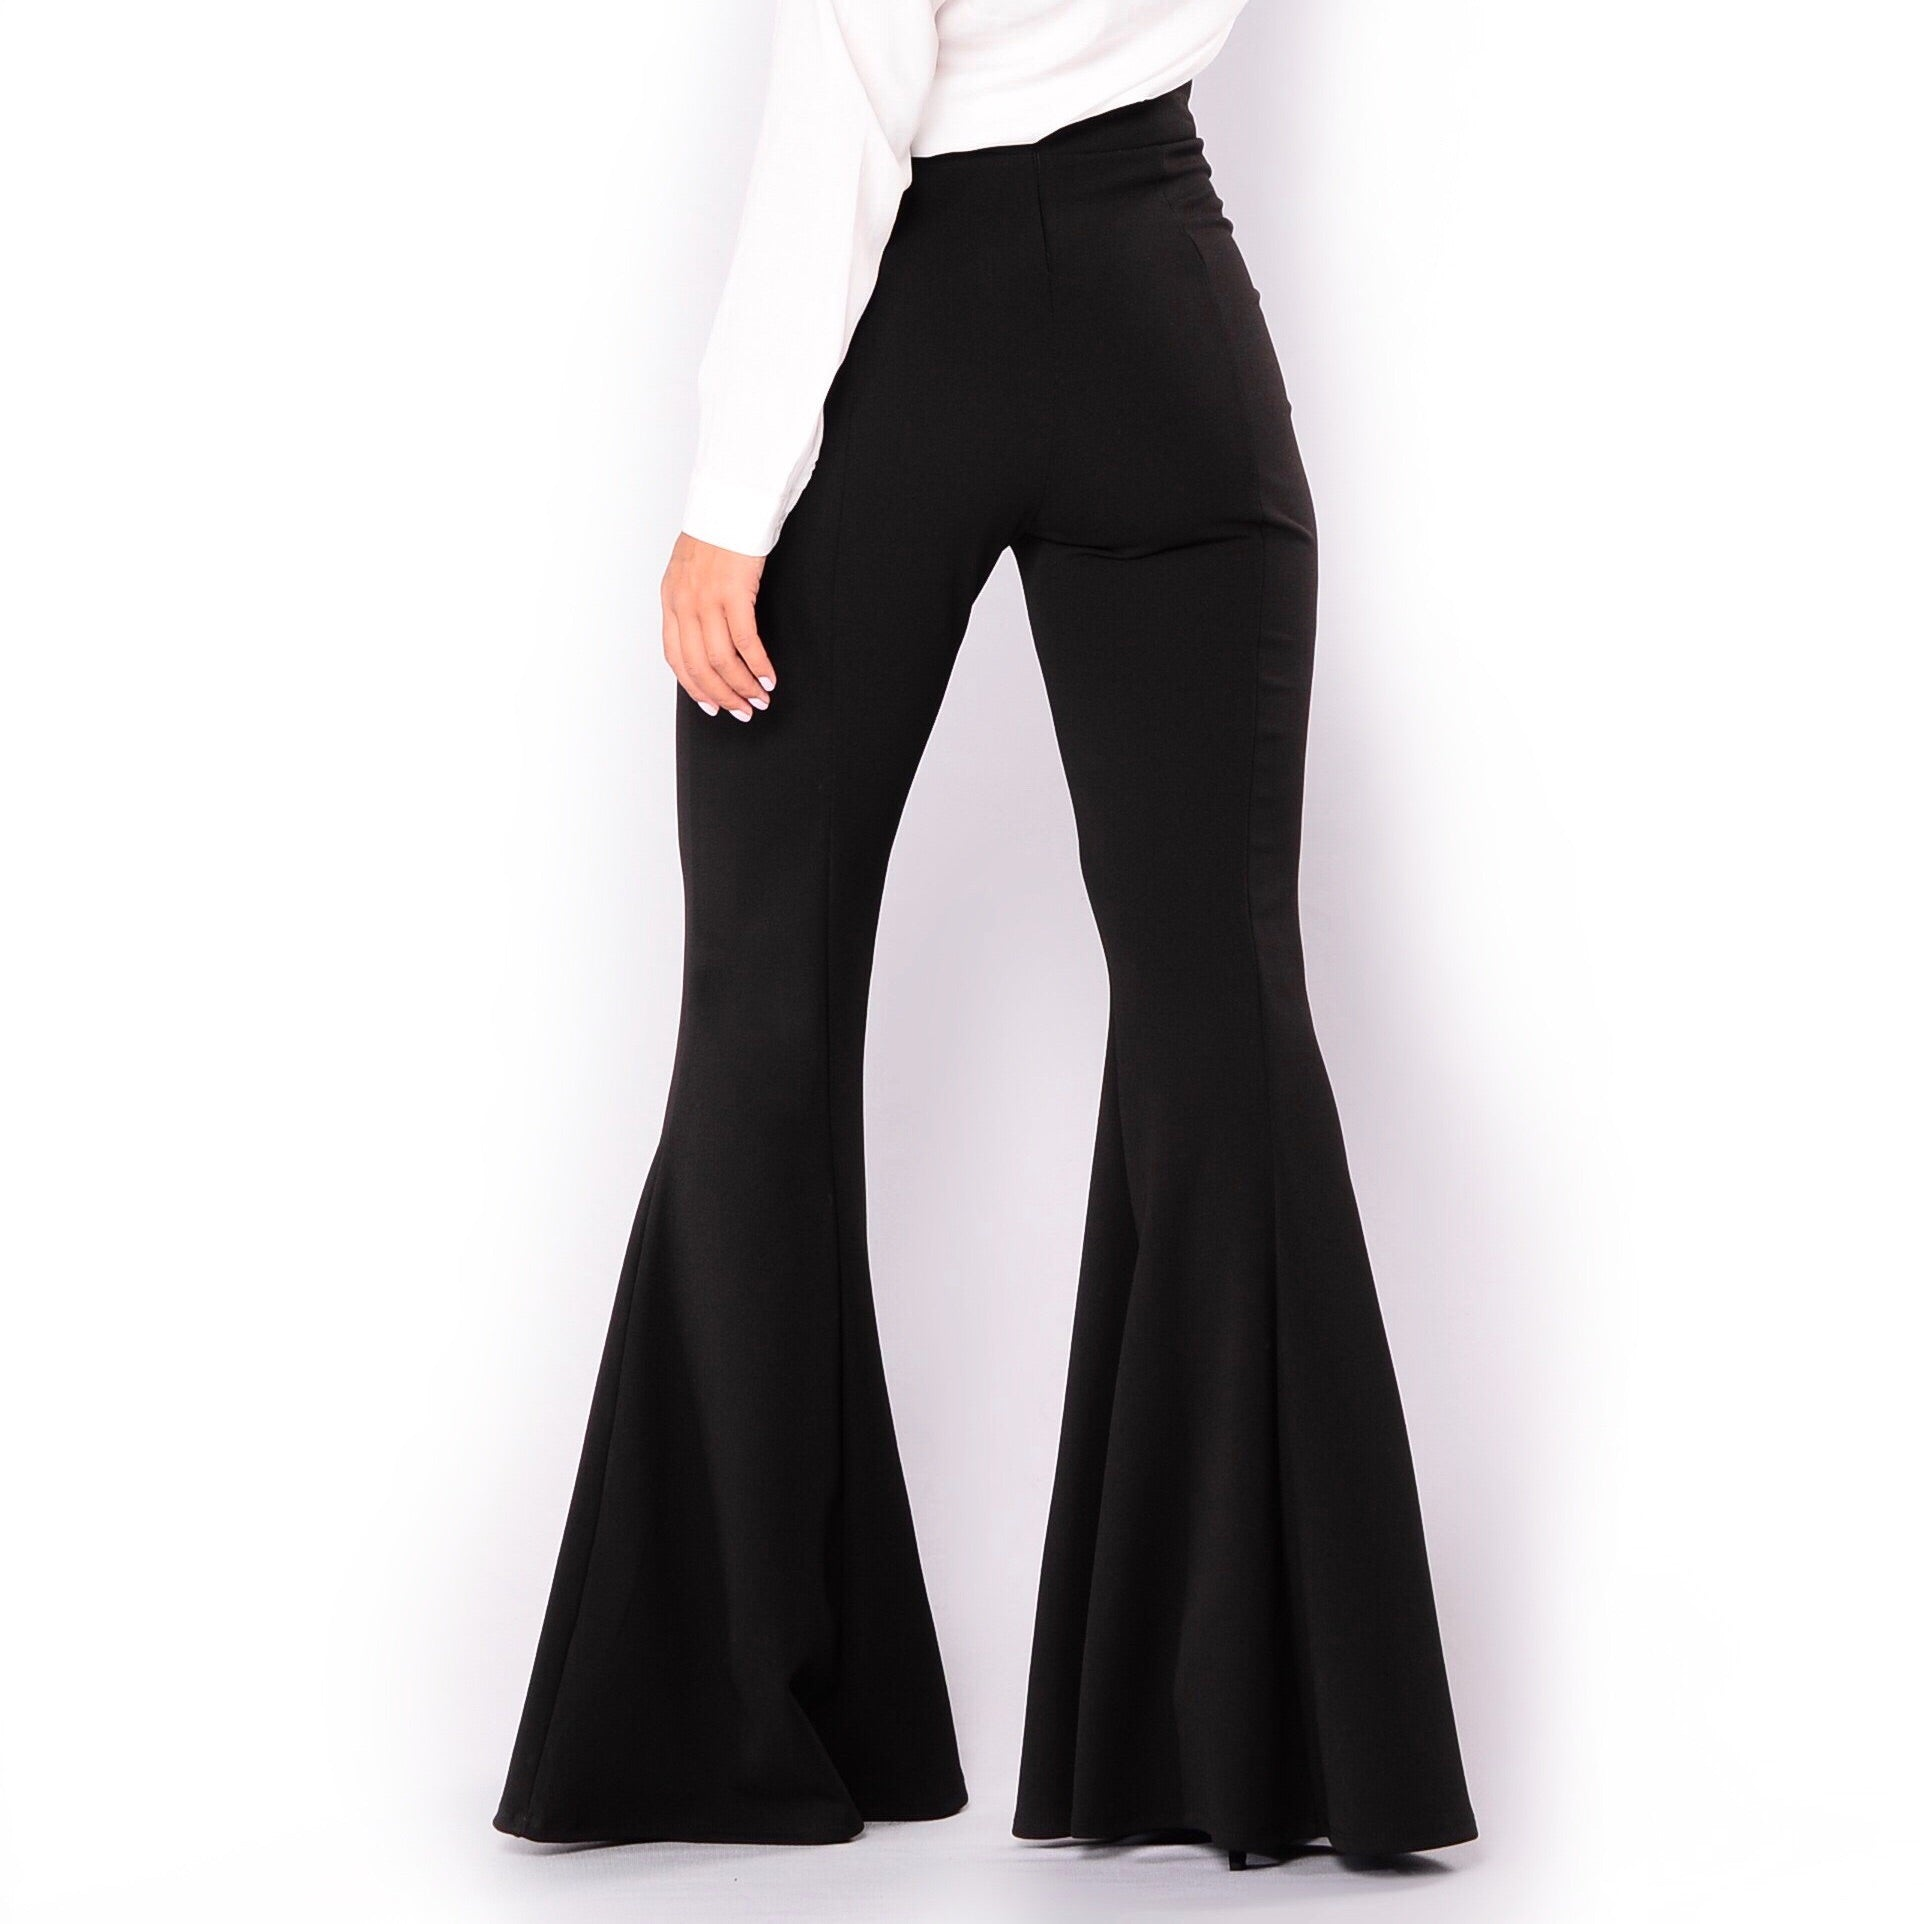 Stretchy & Durable Bellbottoms